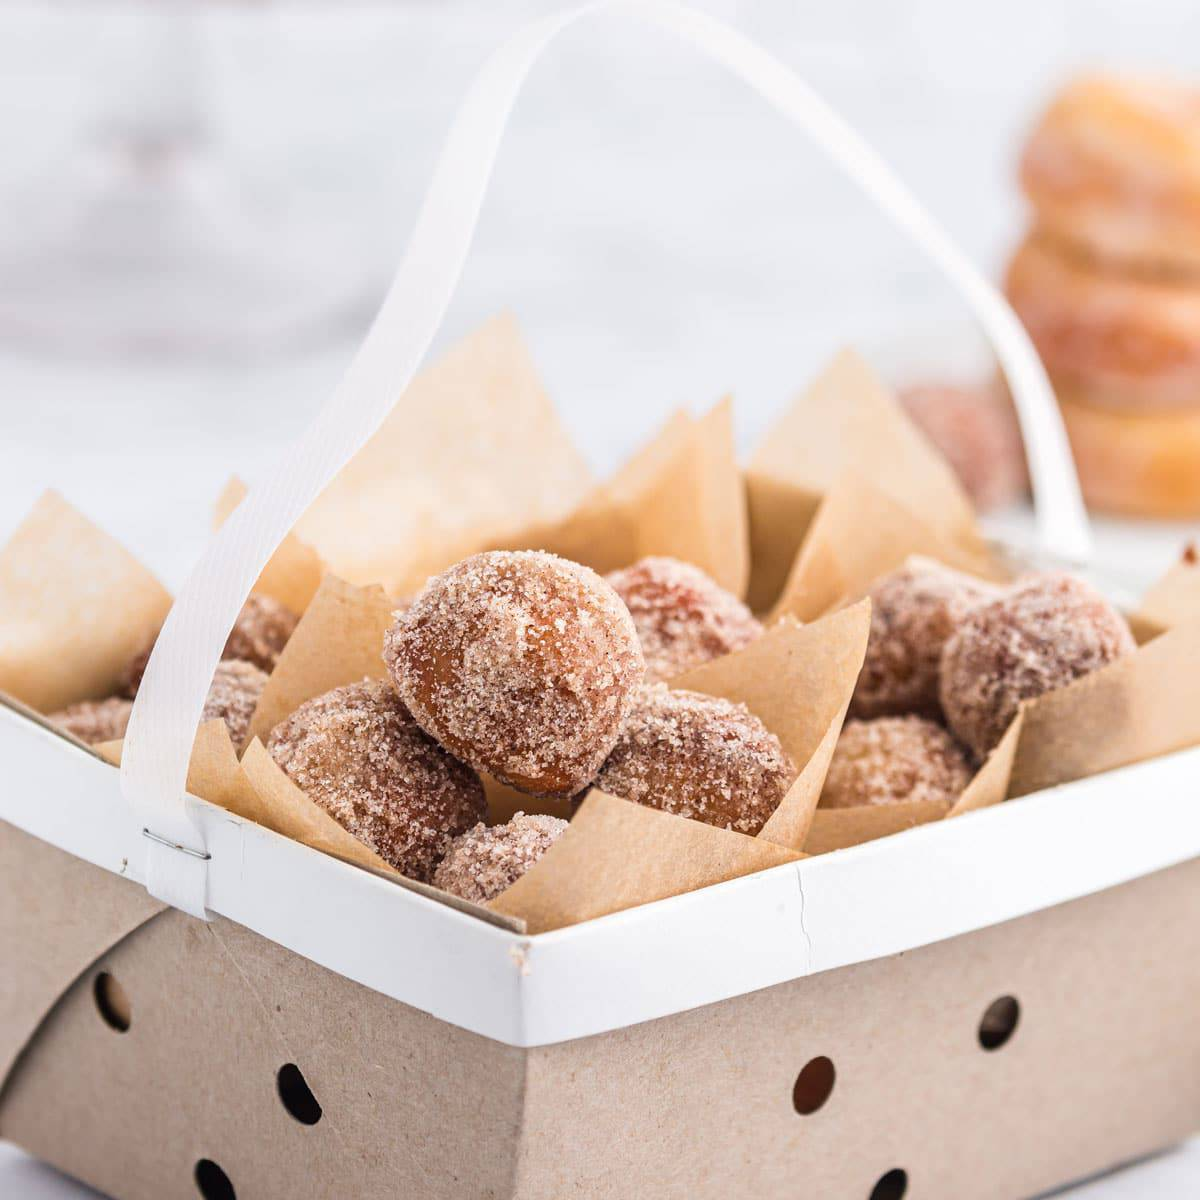 A box of donut holes coated with sugar.